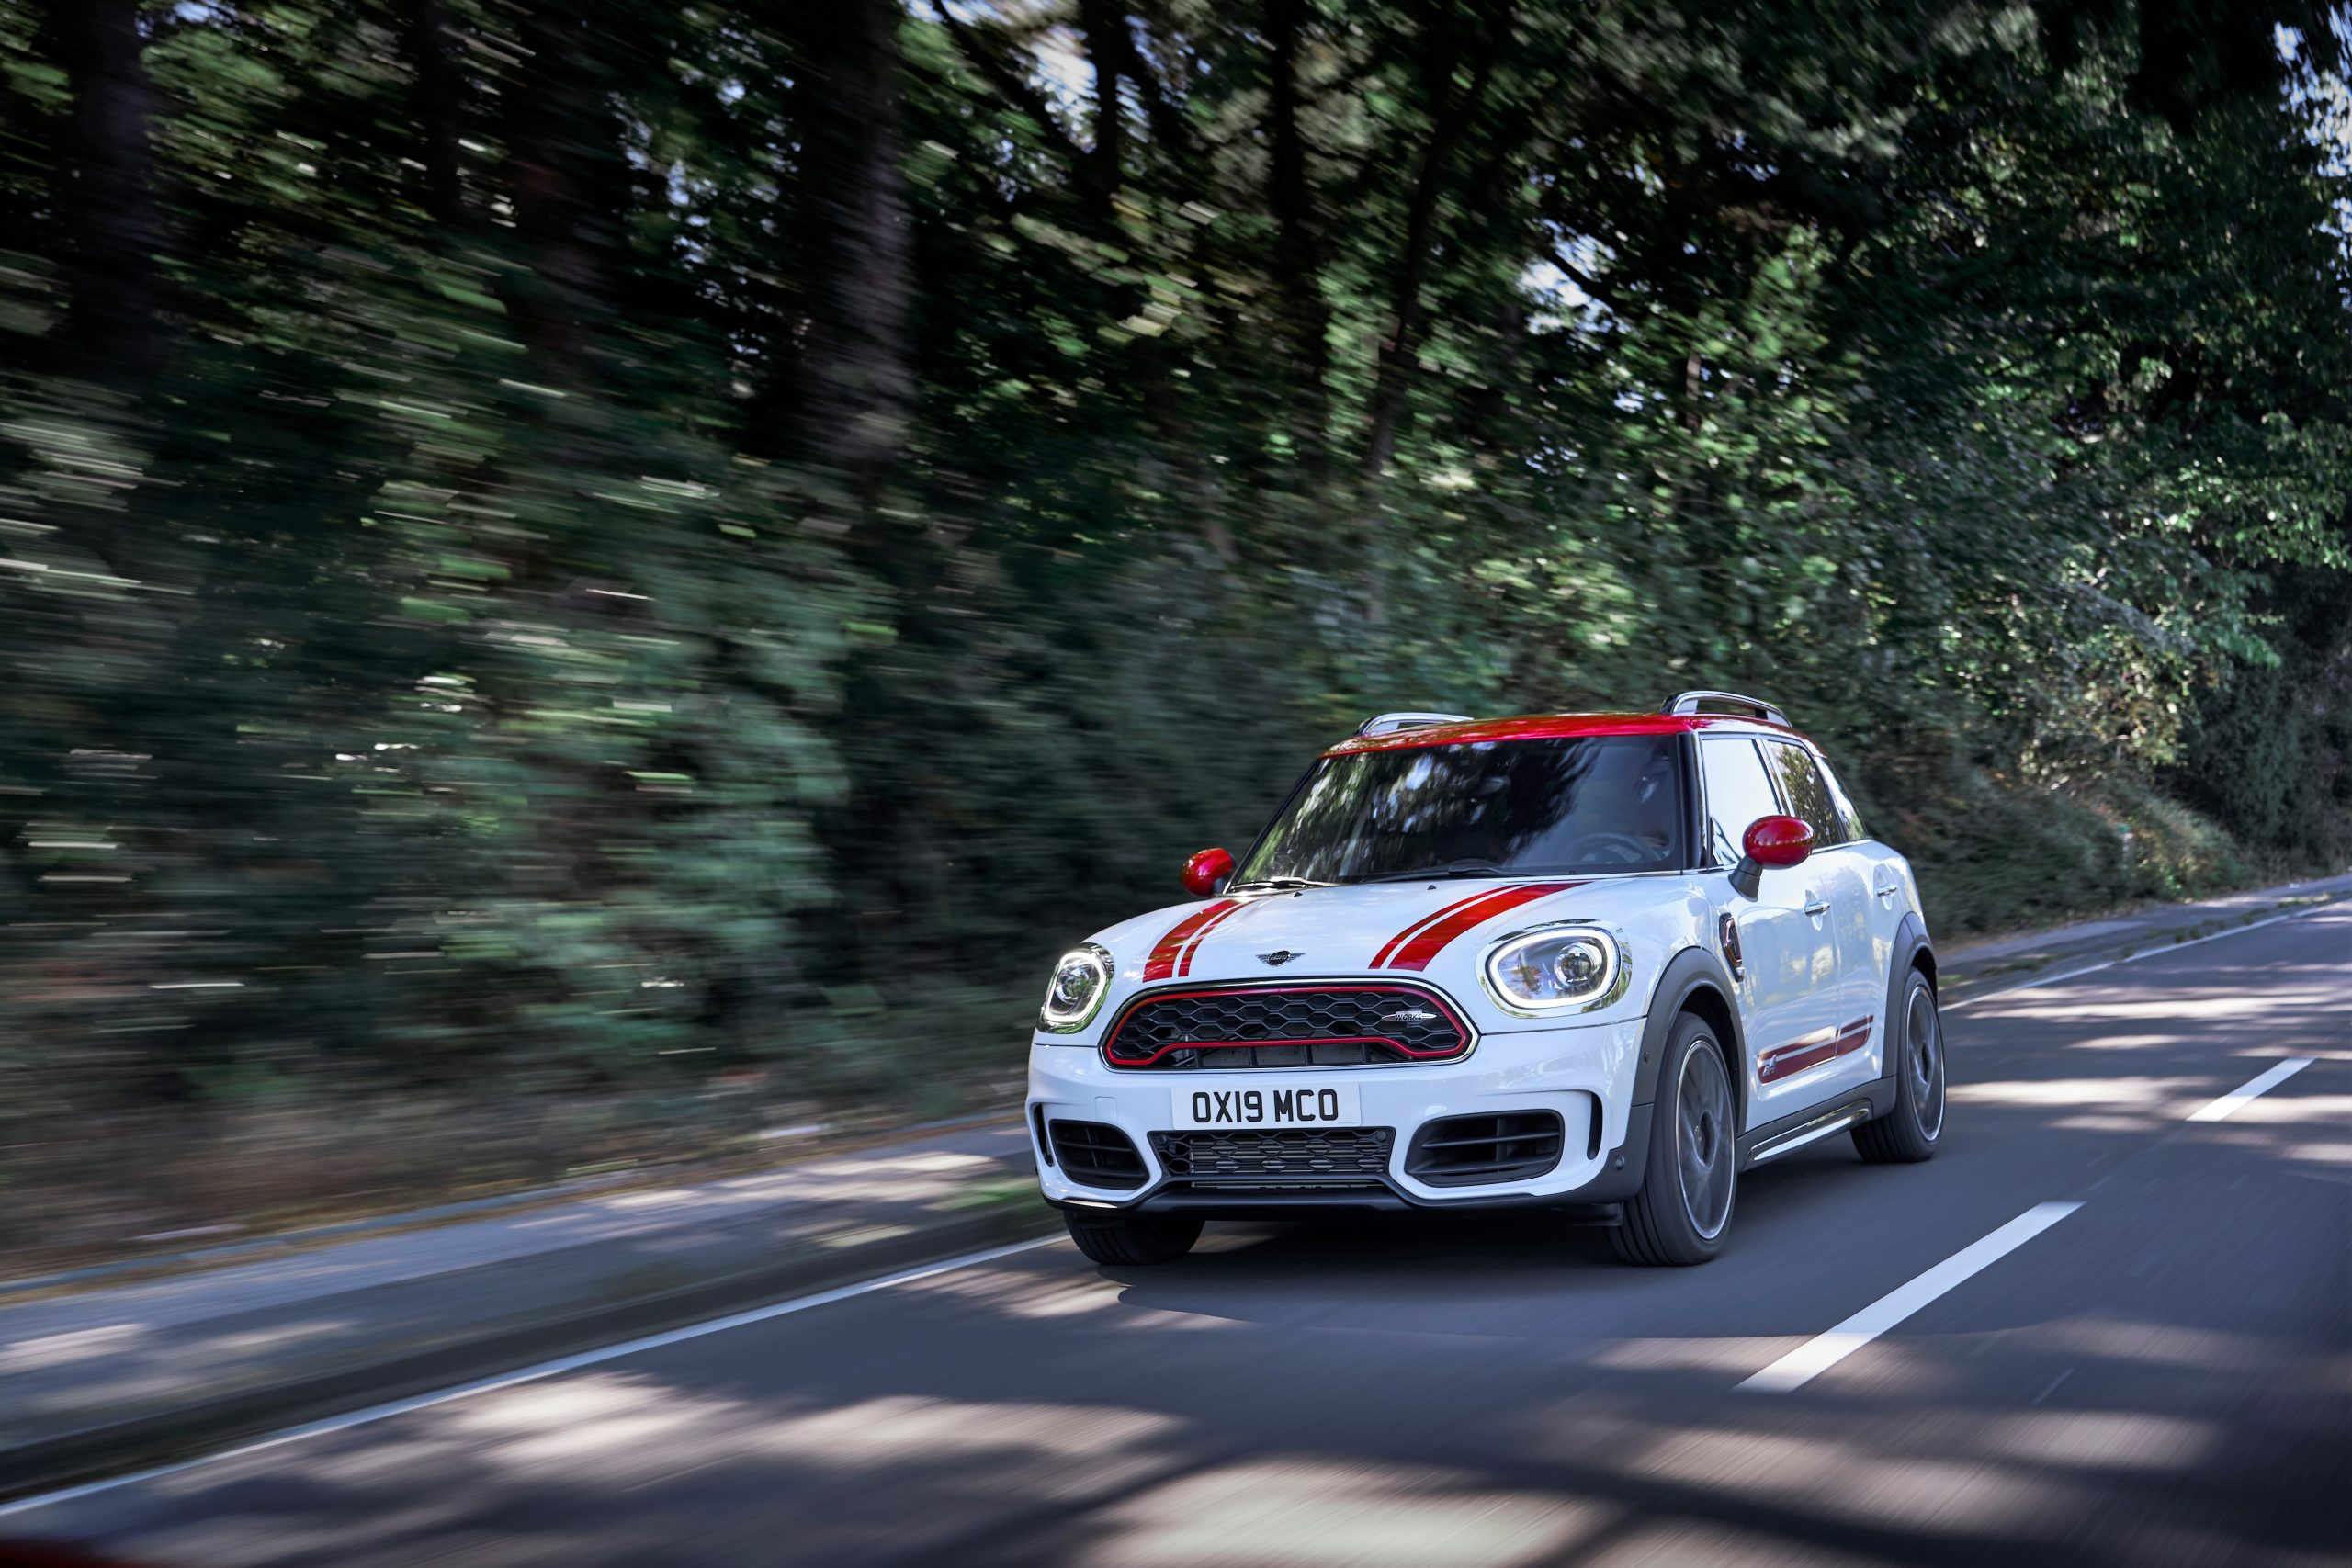 One of the most powerful MINIs yet - The new MINI John Cooper Works Countryman